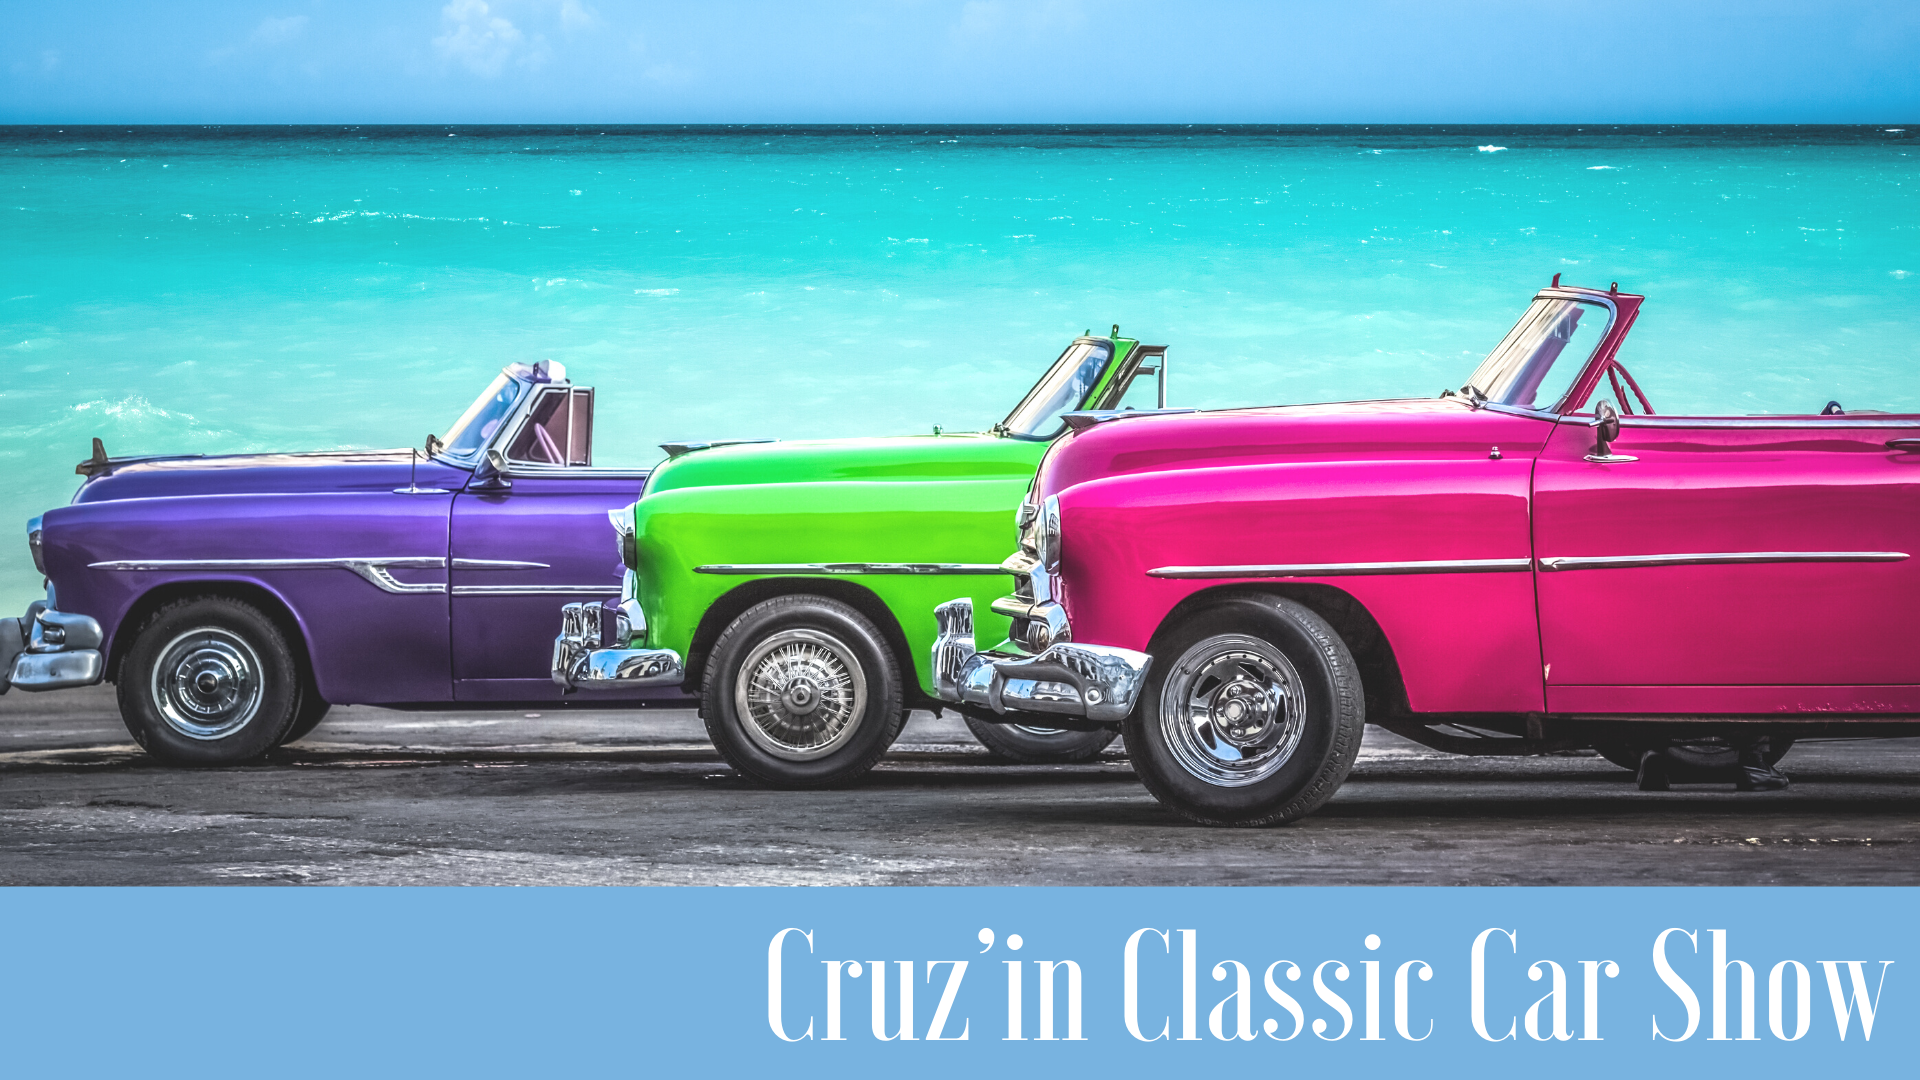 purple, green and pink calsic cars lined up in fron to lake promoting Cruz'in Classic Car Show